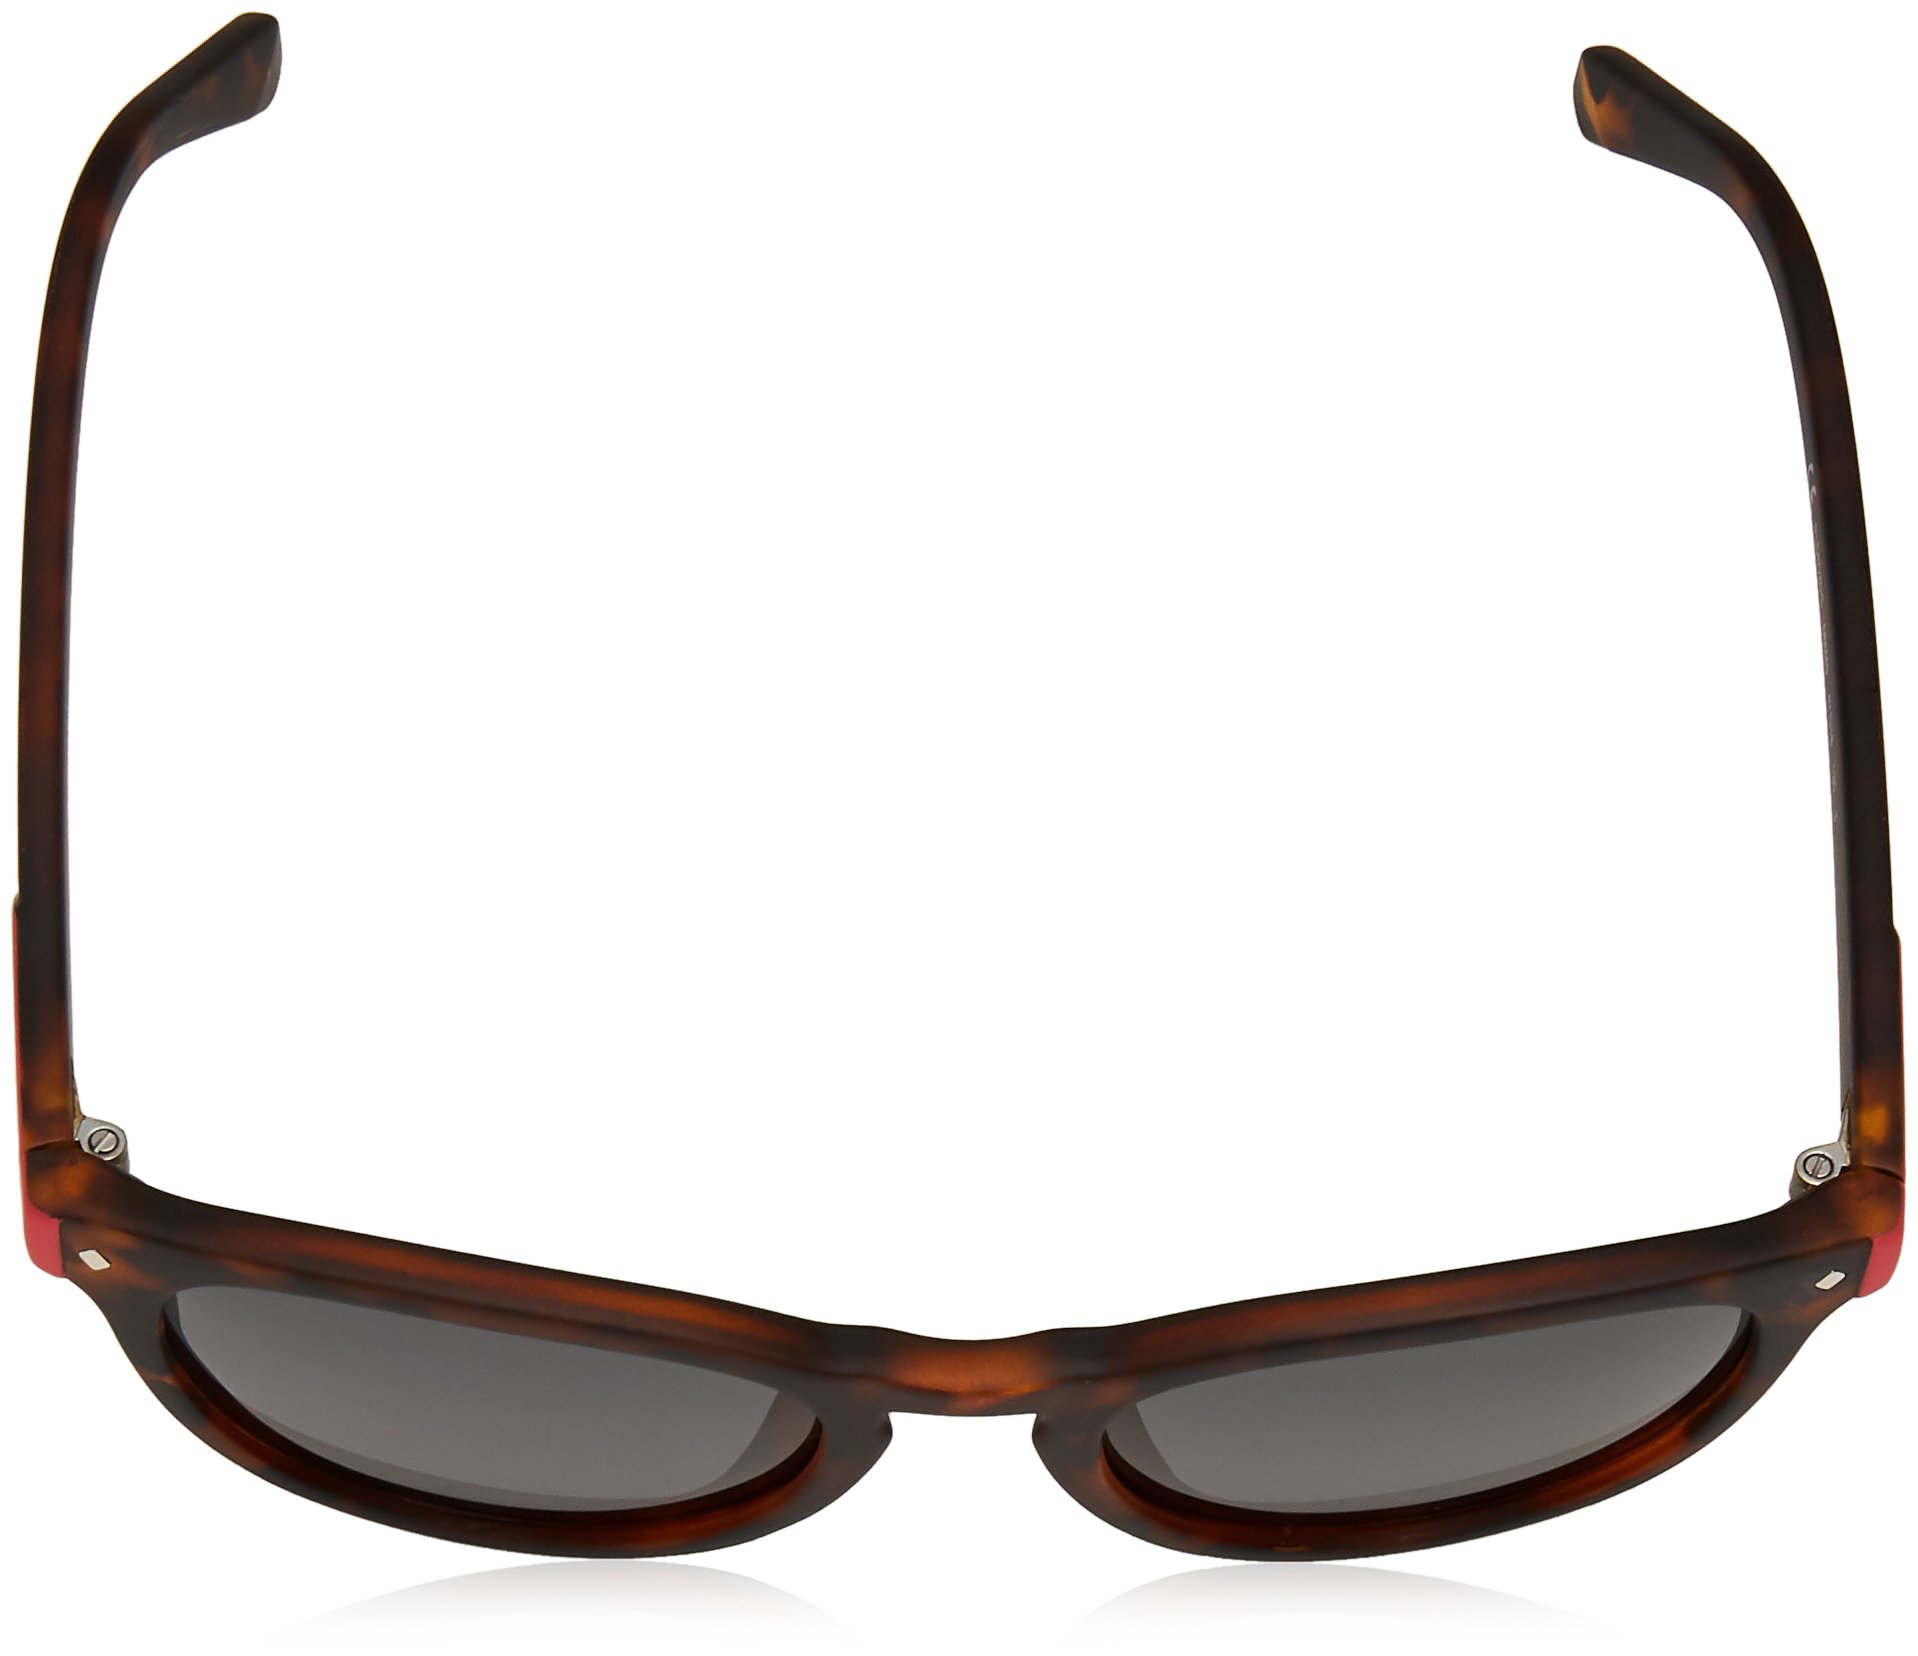 Polaroid Sunglasses Girls' Pld8026s Polarized Oval Sunglasses, DKHAVANA, 47 mm by Polaroid Sunglasses (Image #4)